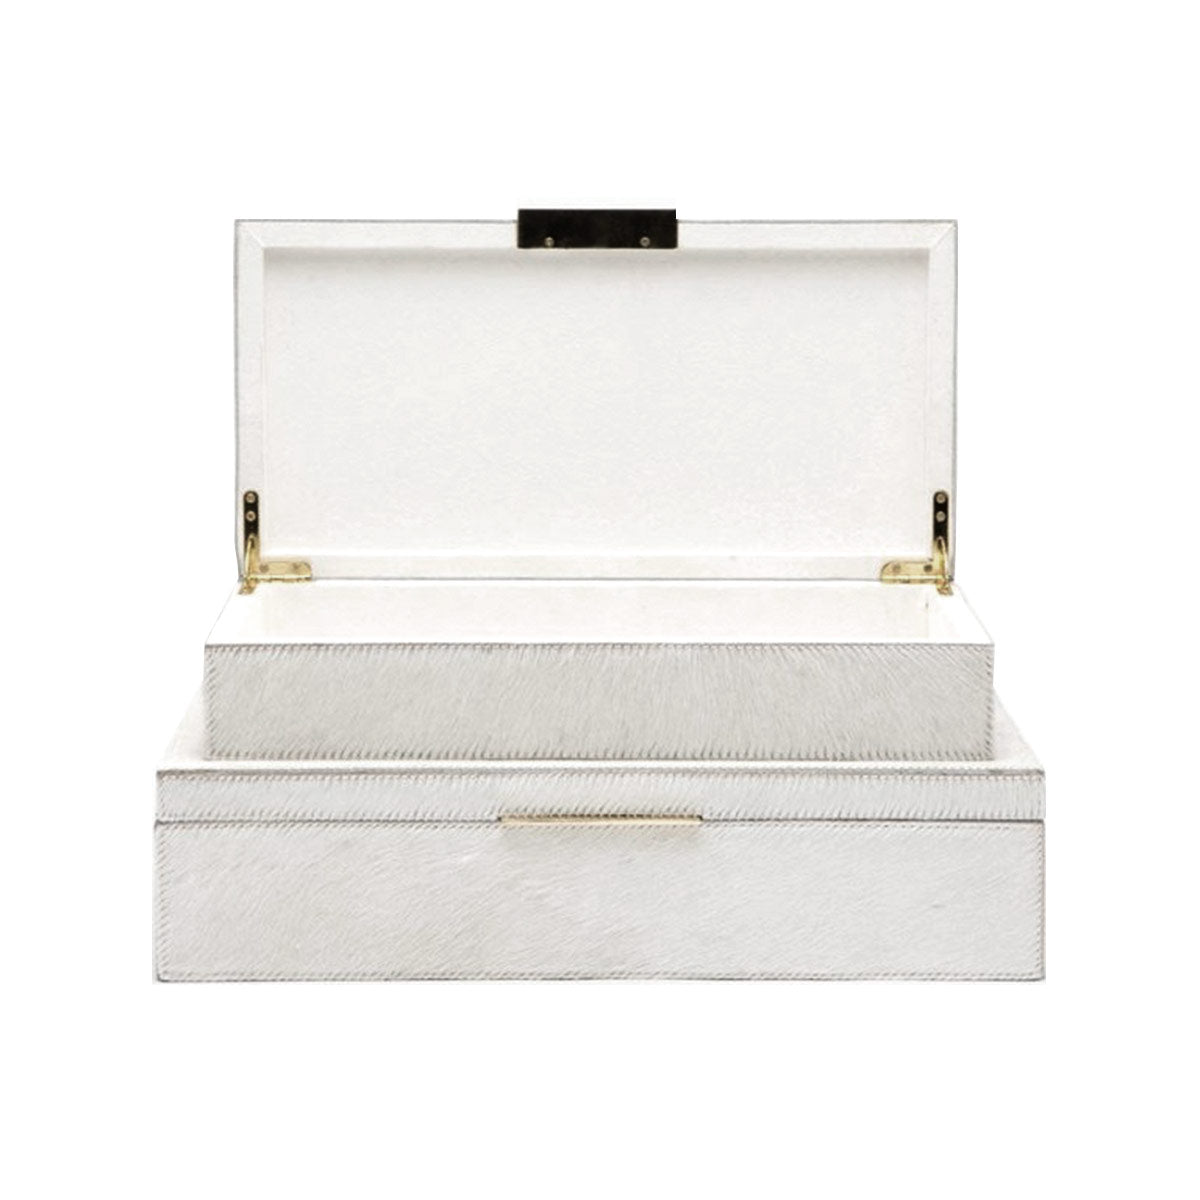 Ralston White Hair-On-Hide Large Box